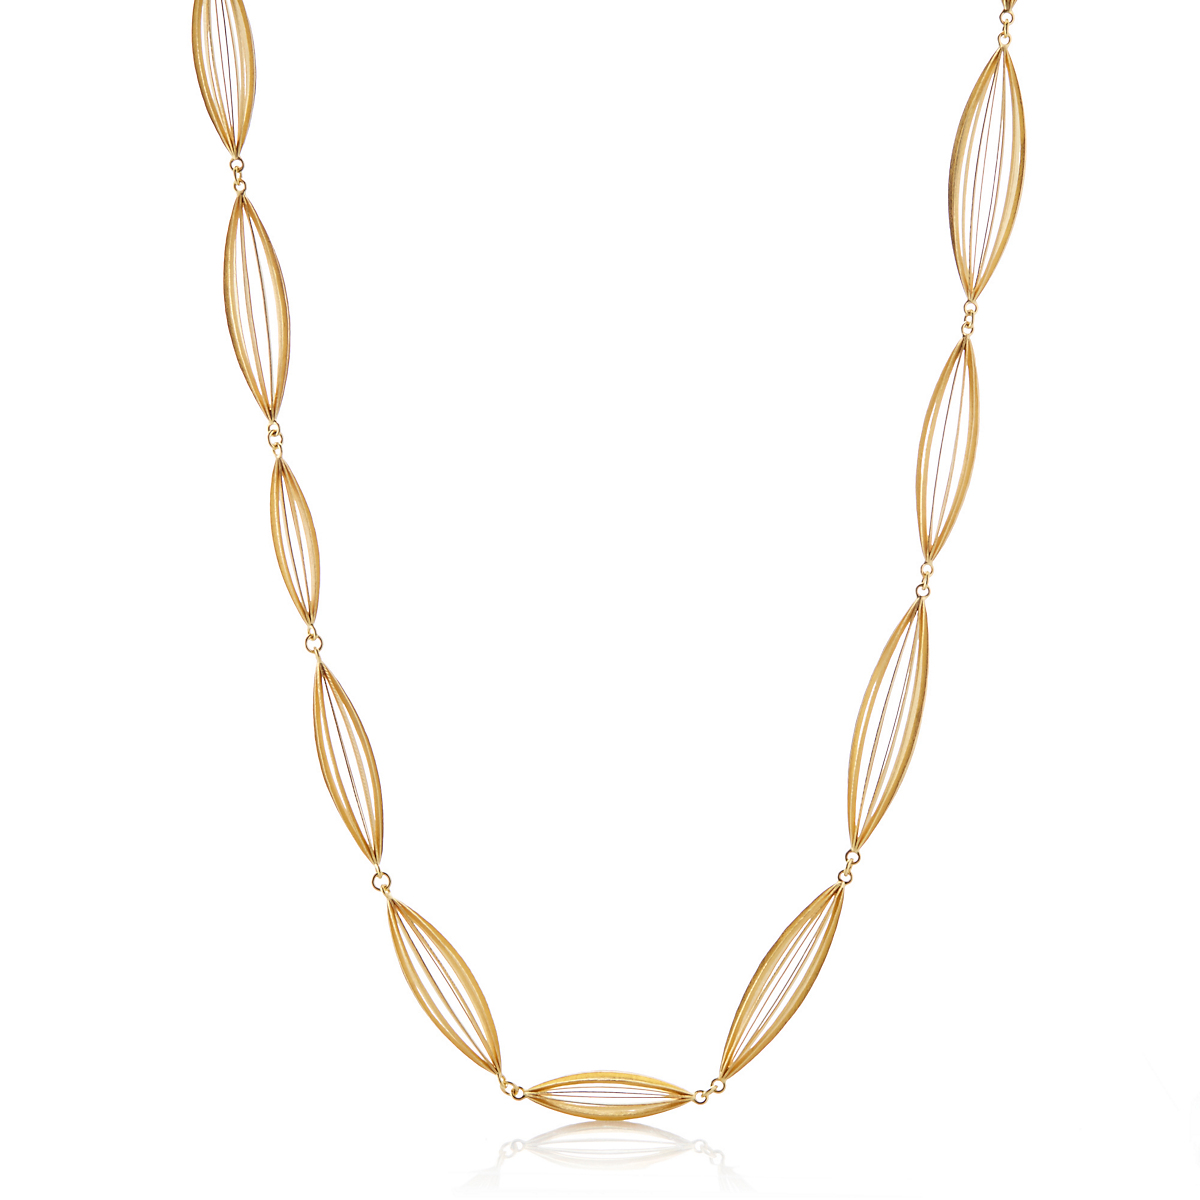 McTeigue & McClelland Gold Baccello Necklace